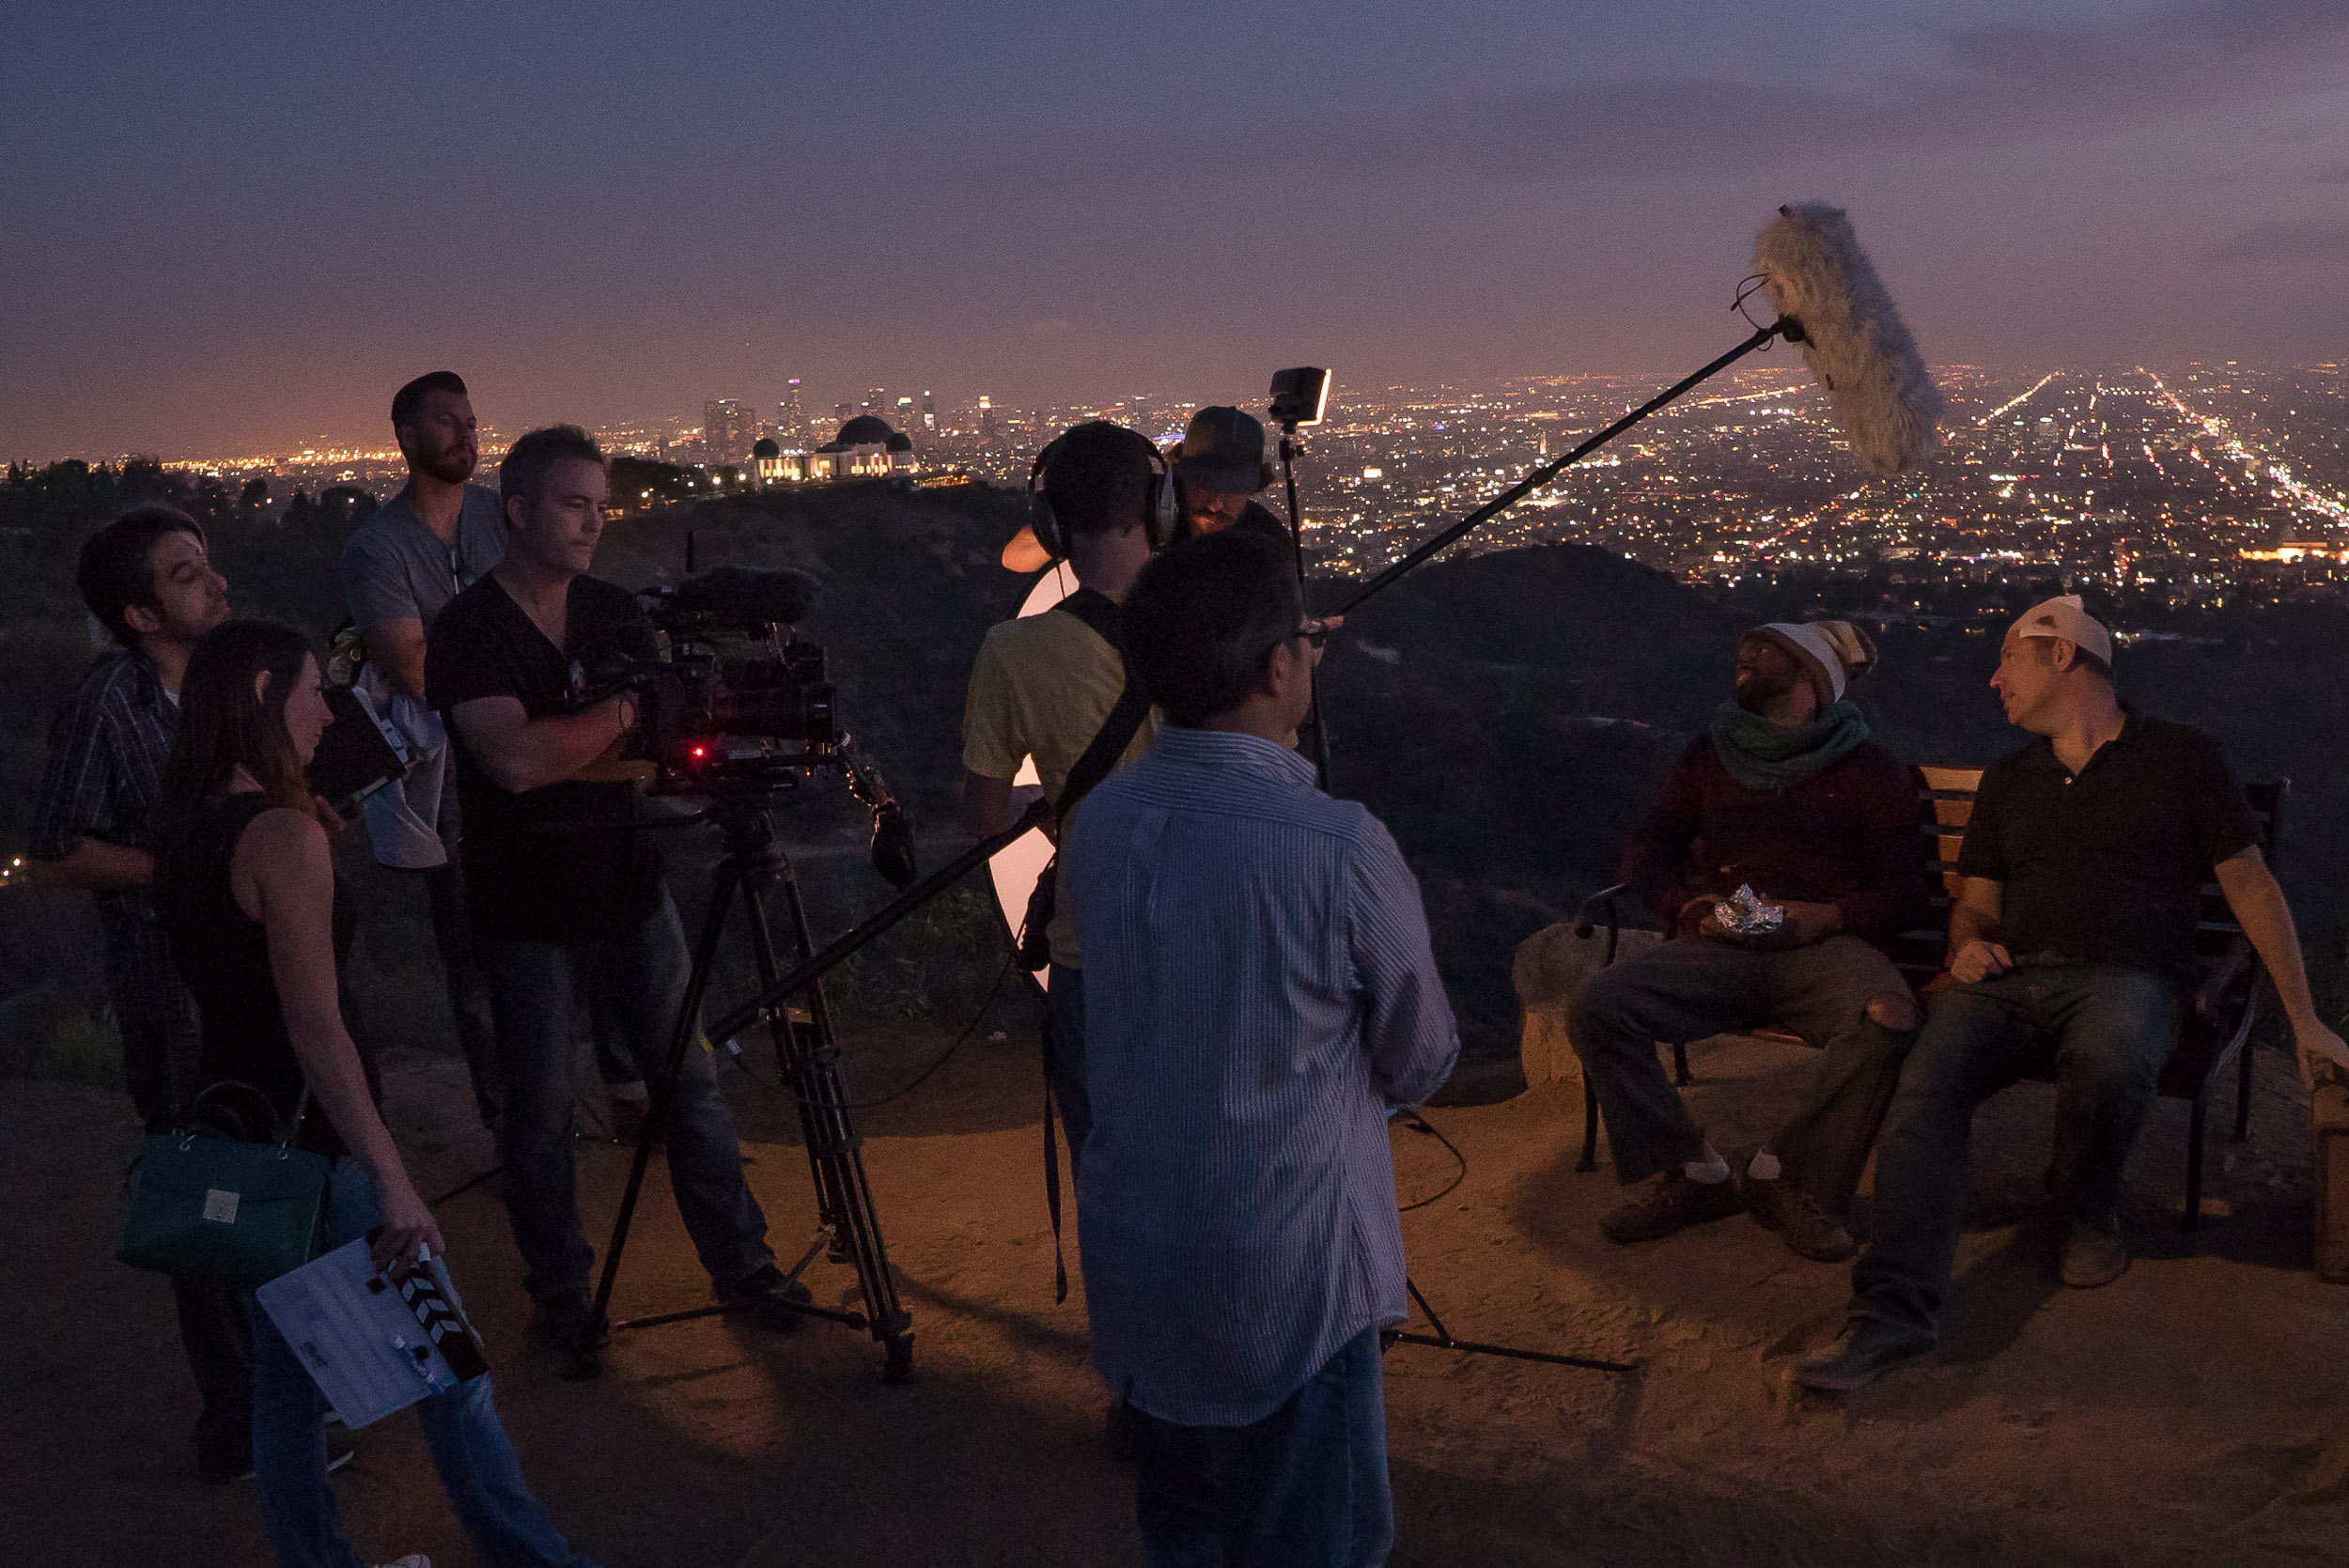 Hiking the camera gear up the Griffith Park trails along with all the props was...fun. Yeah let's just call it fun.